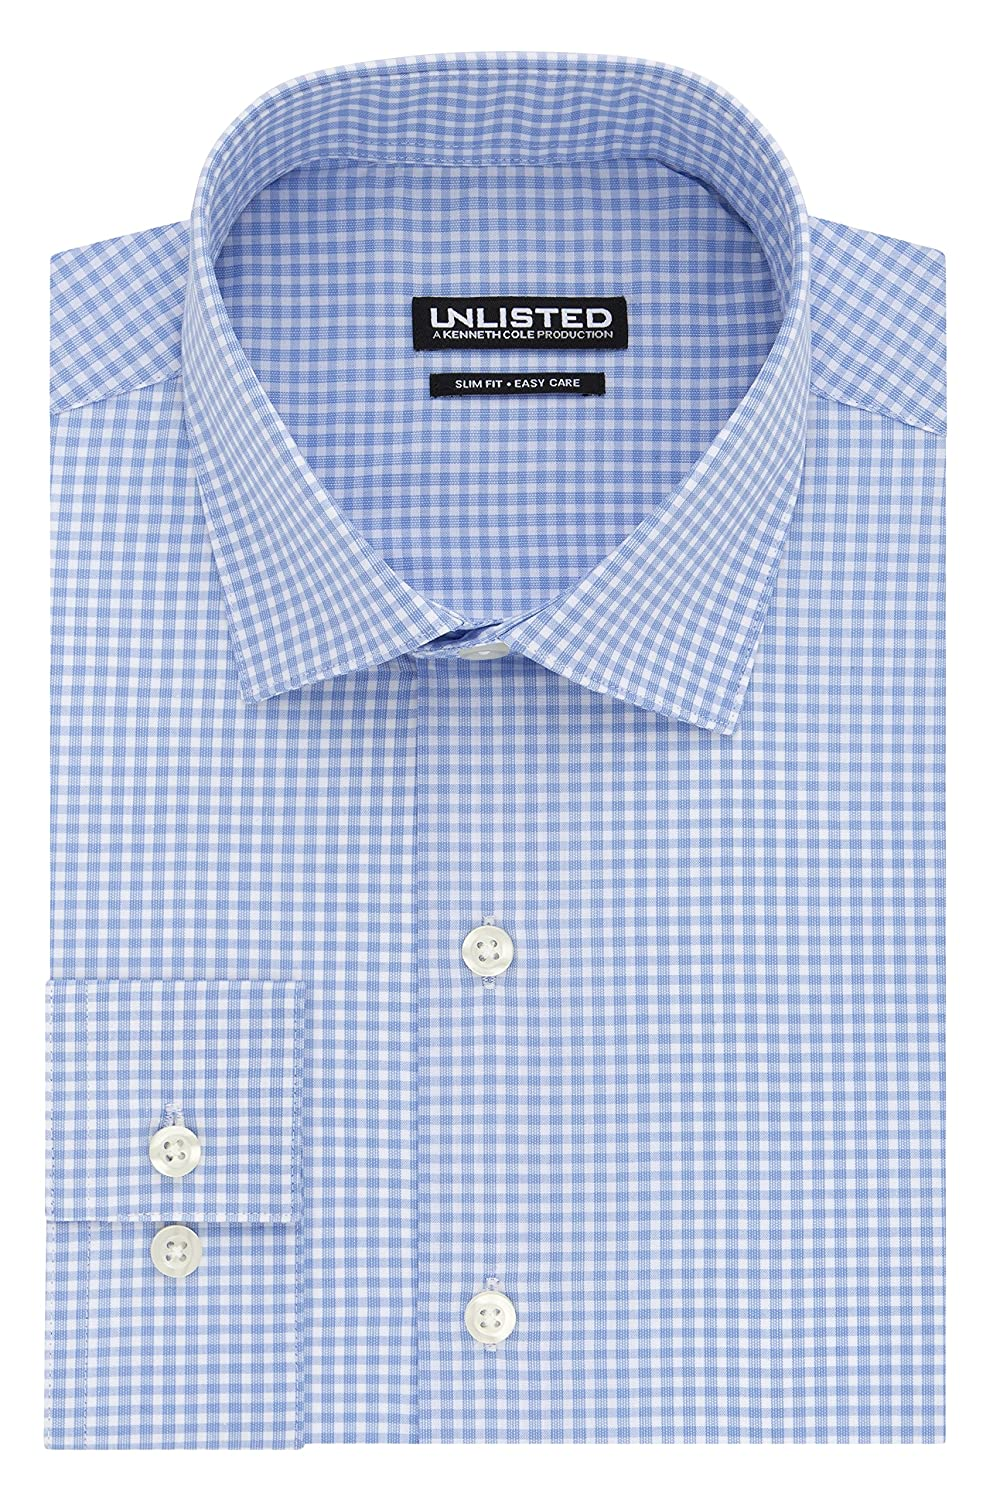 Kenneth Cole Unlisted Men's Slim Fit Check Spread Collar Dress Shirt 32LG051